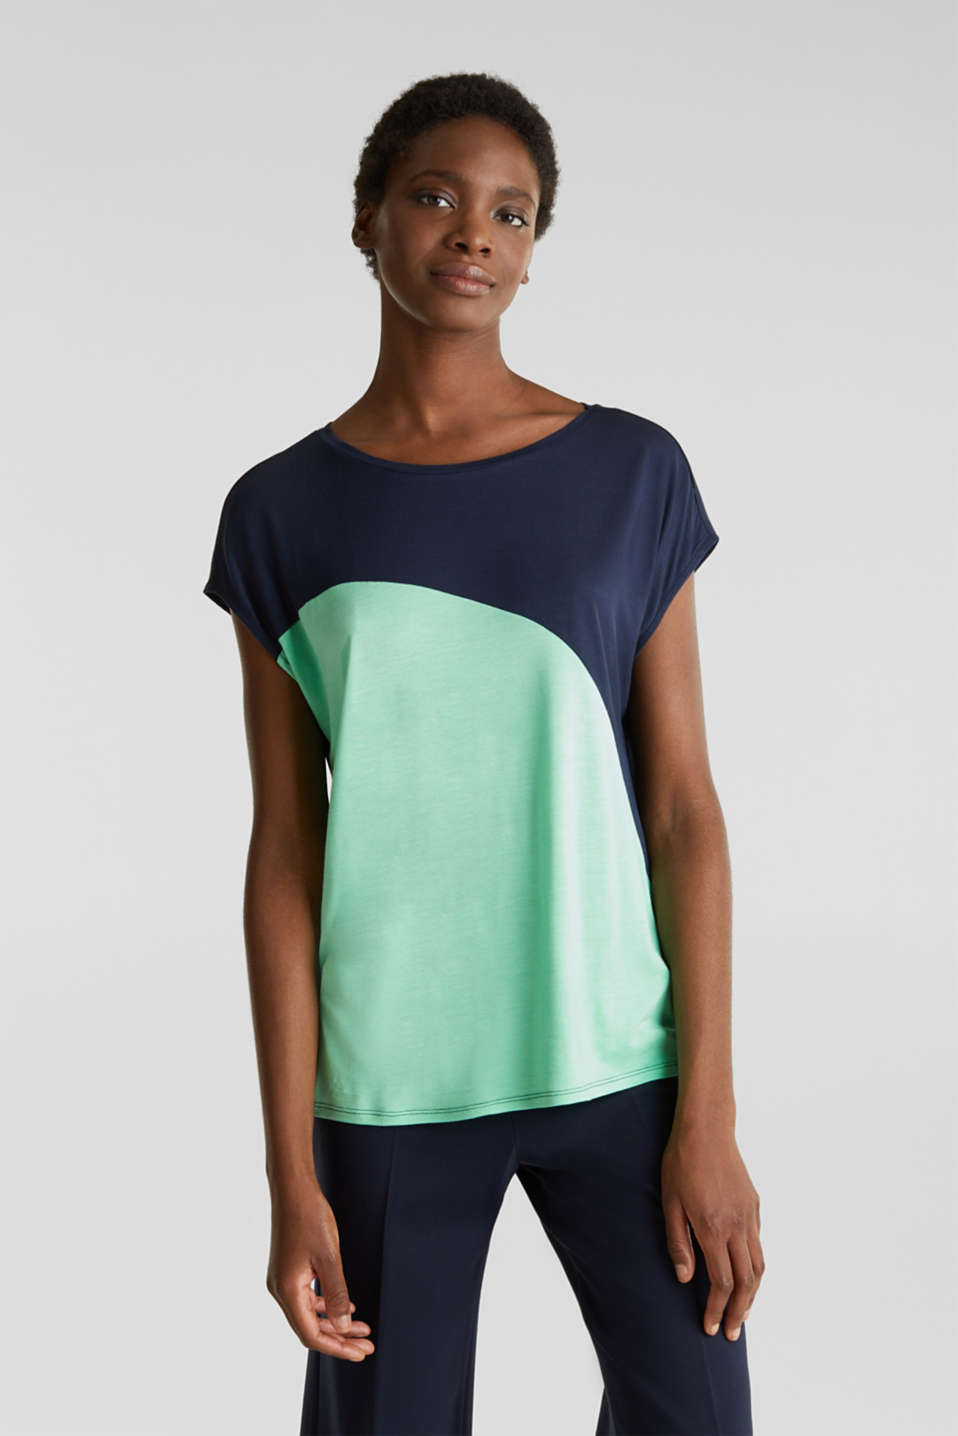 Esprit - T-shirt color block au mix de couleurs inédit